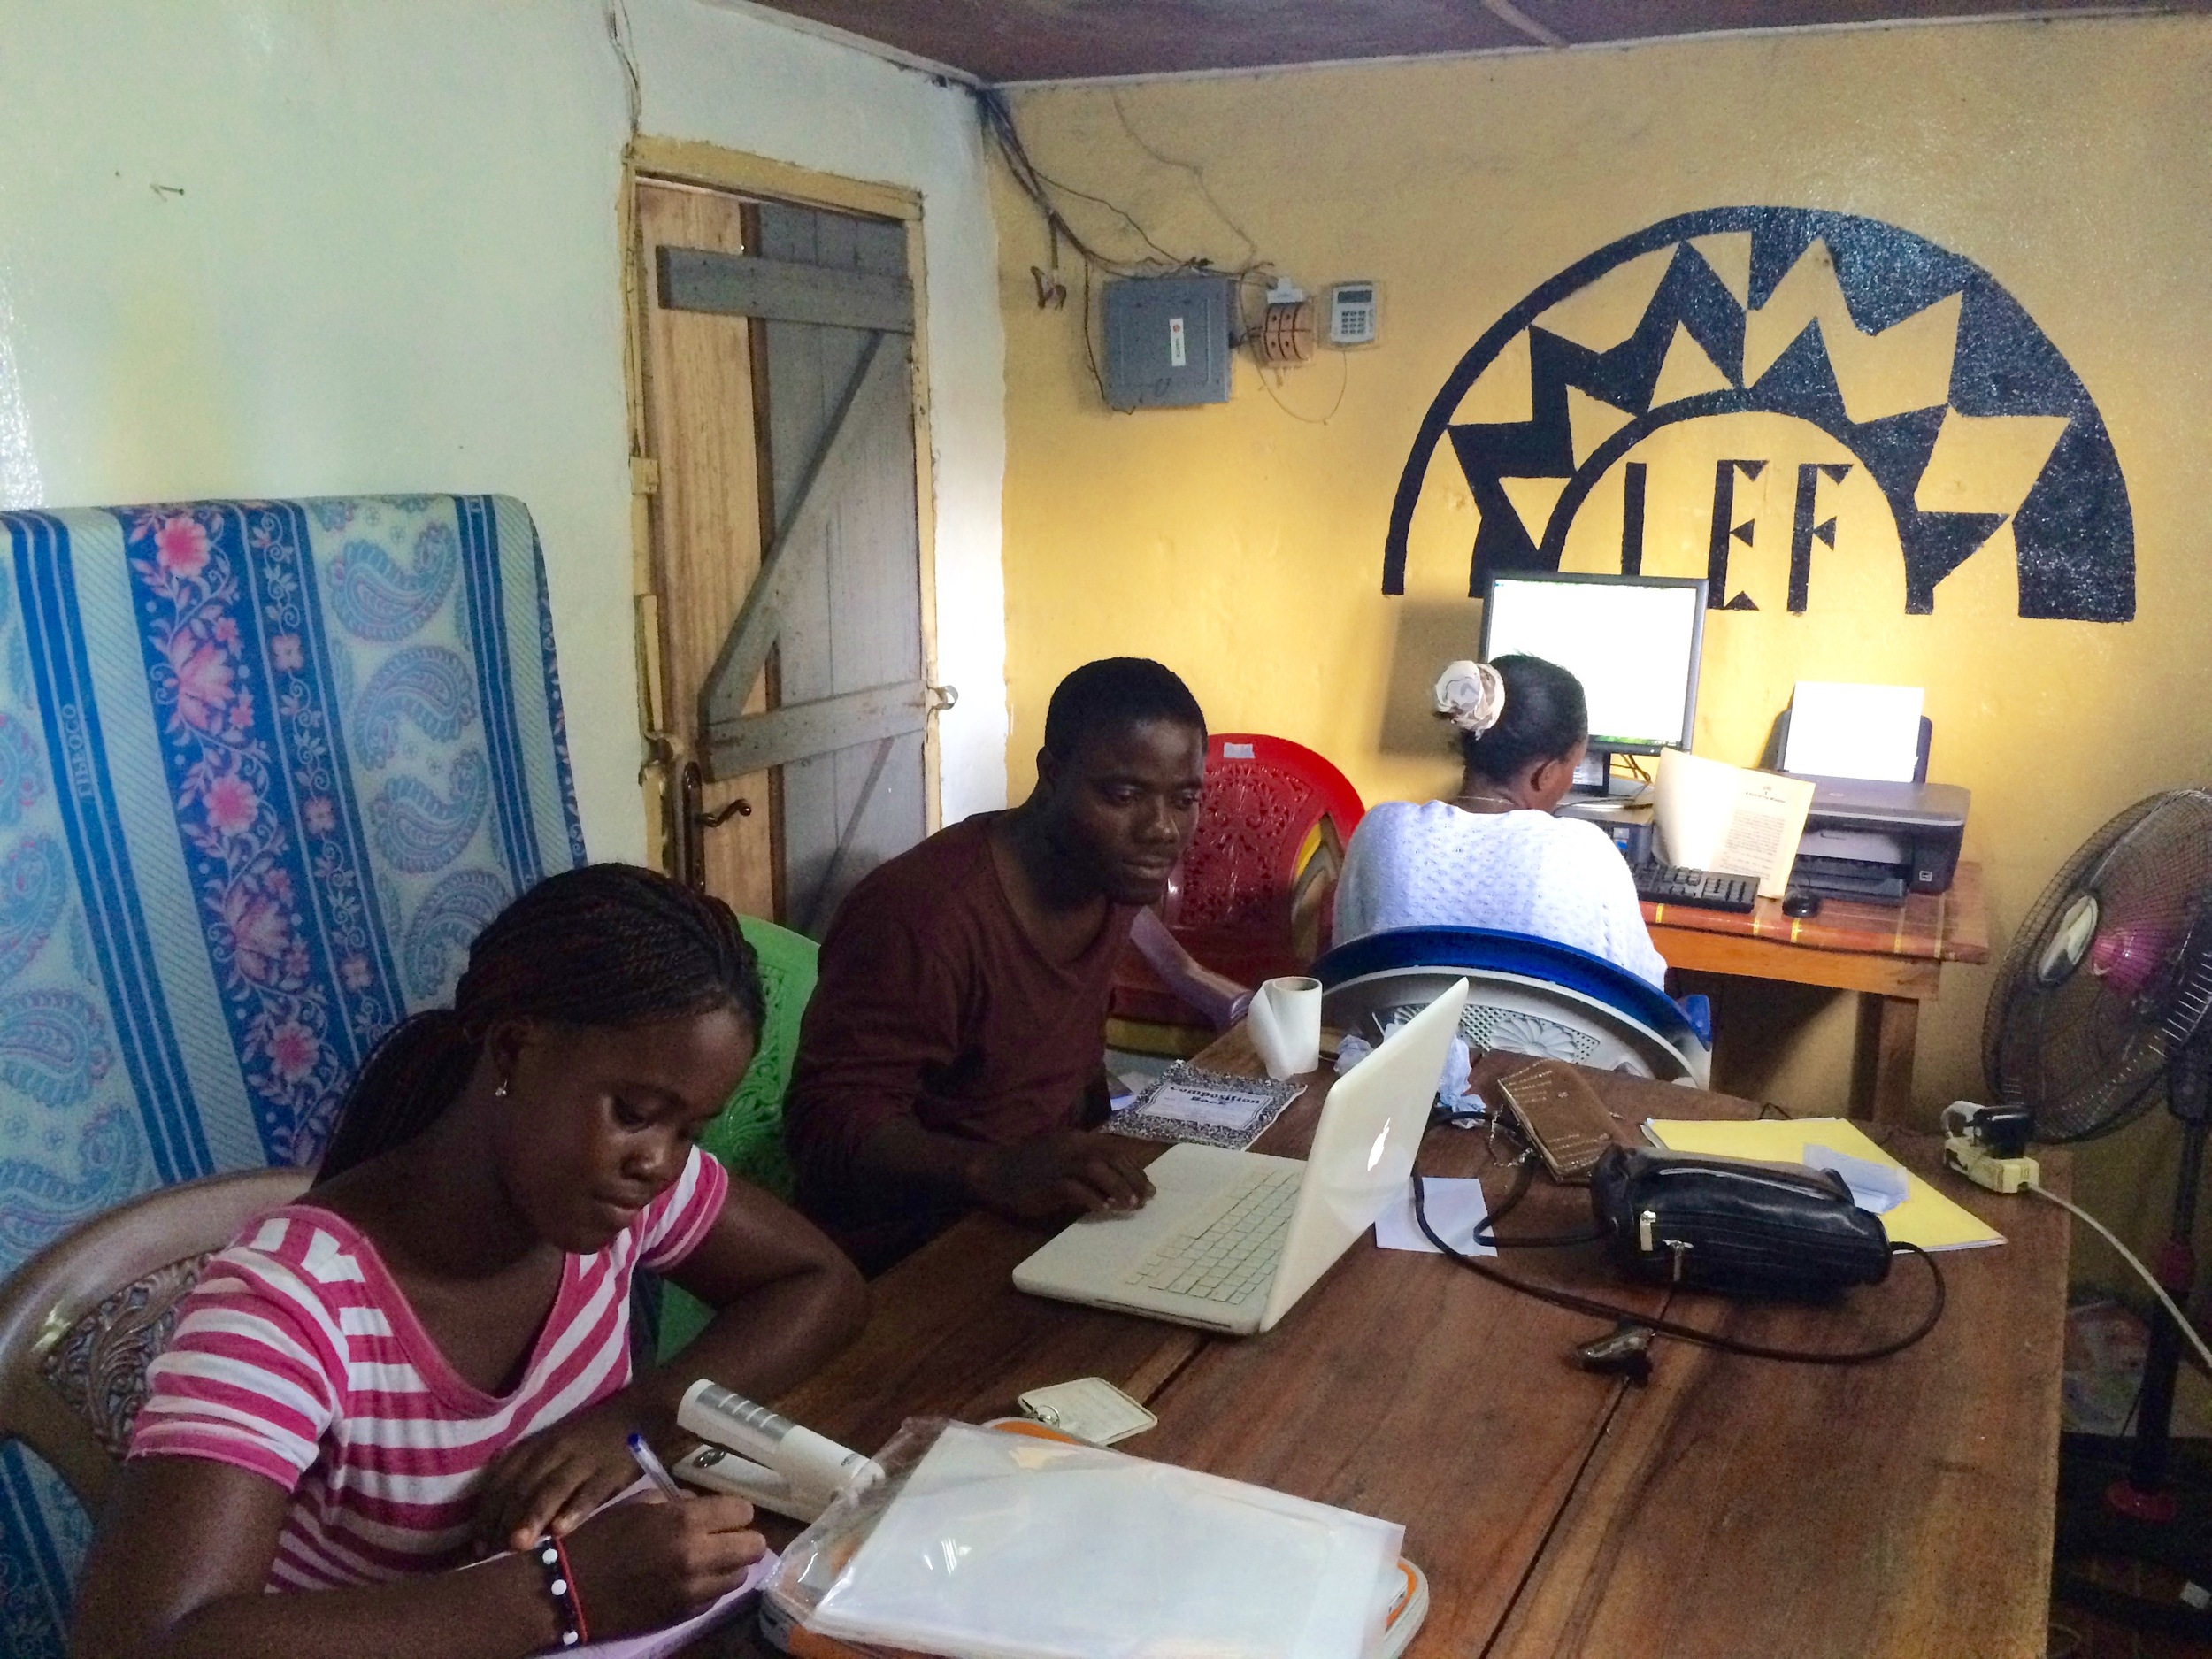 Coordinators and students using the LEF office in Liberia to work.